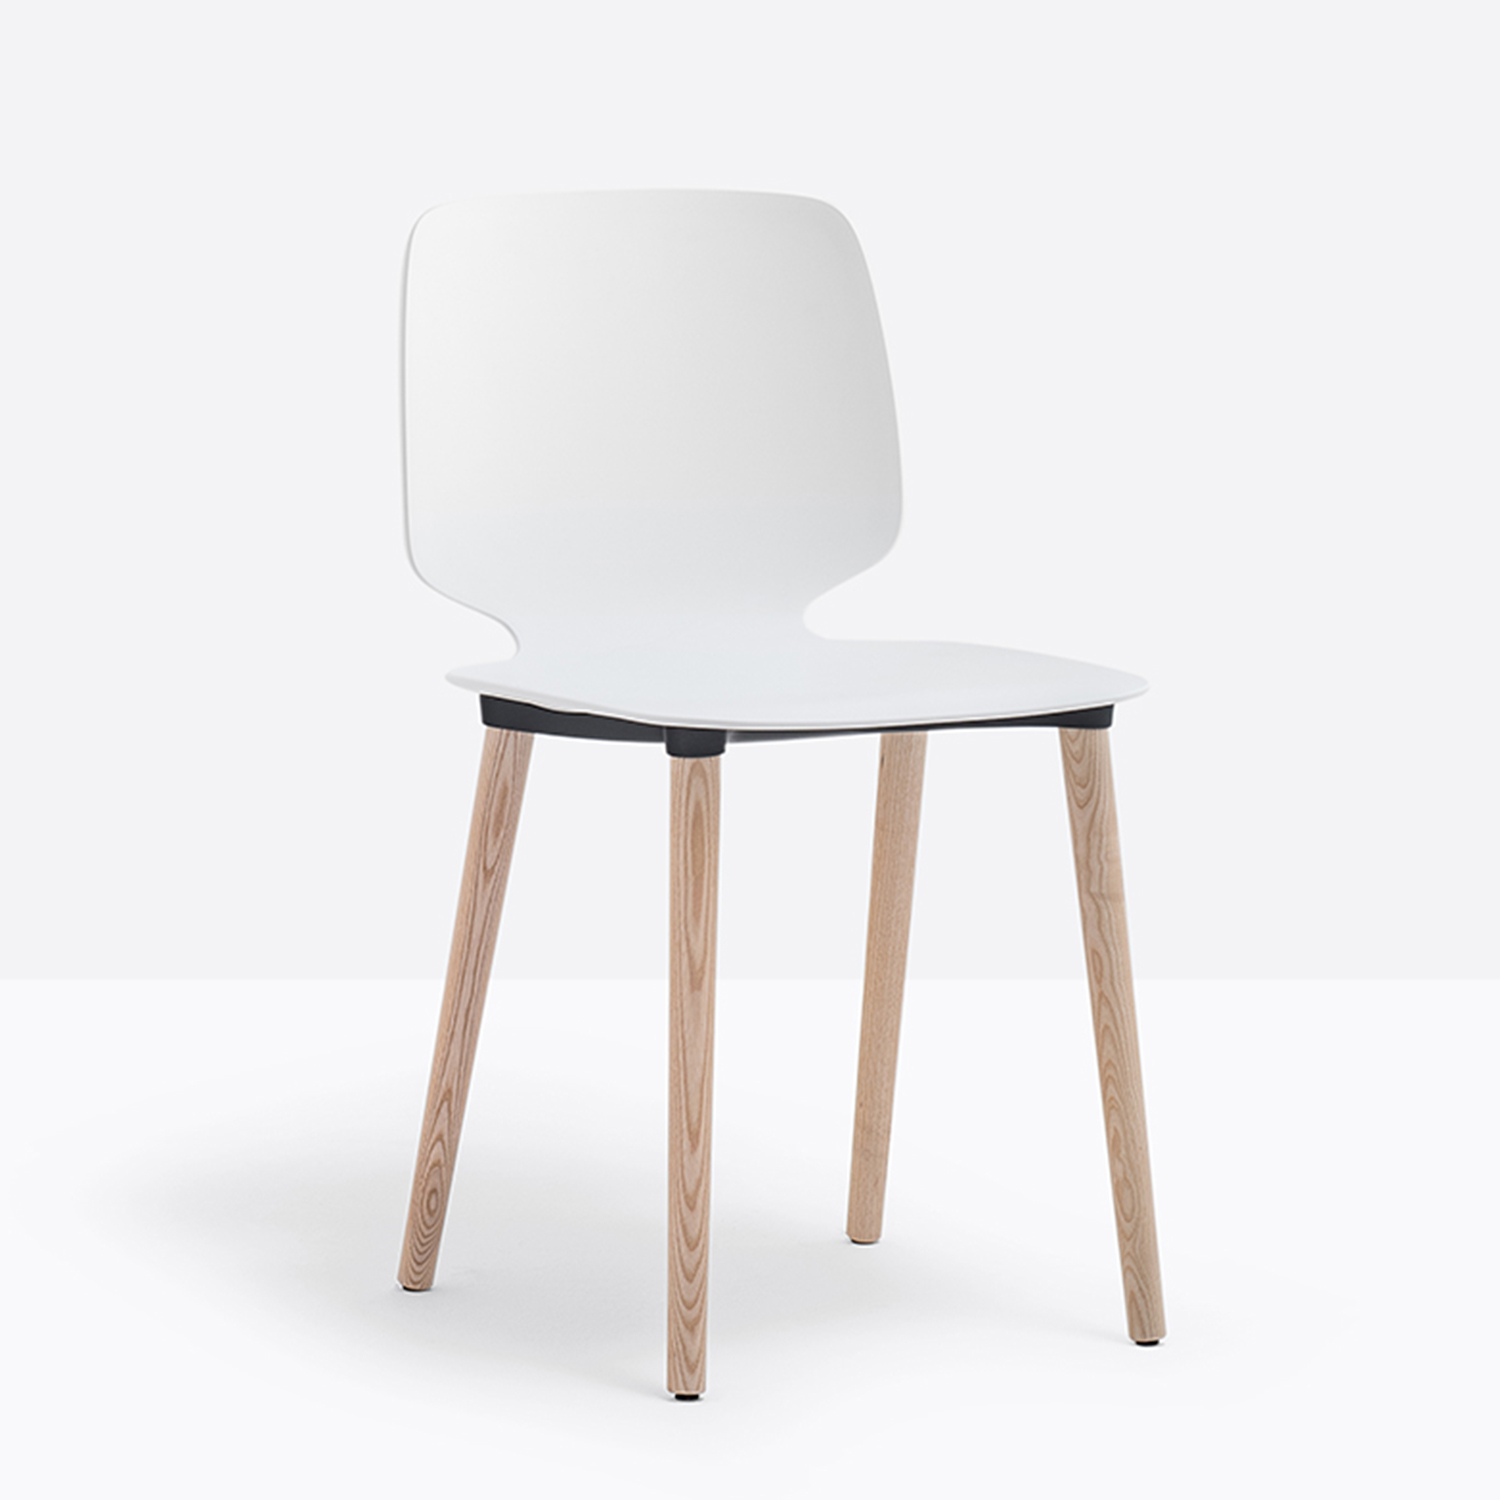 pedrali-babila-chair-2750